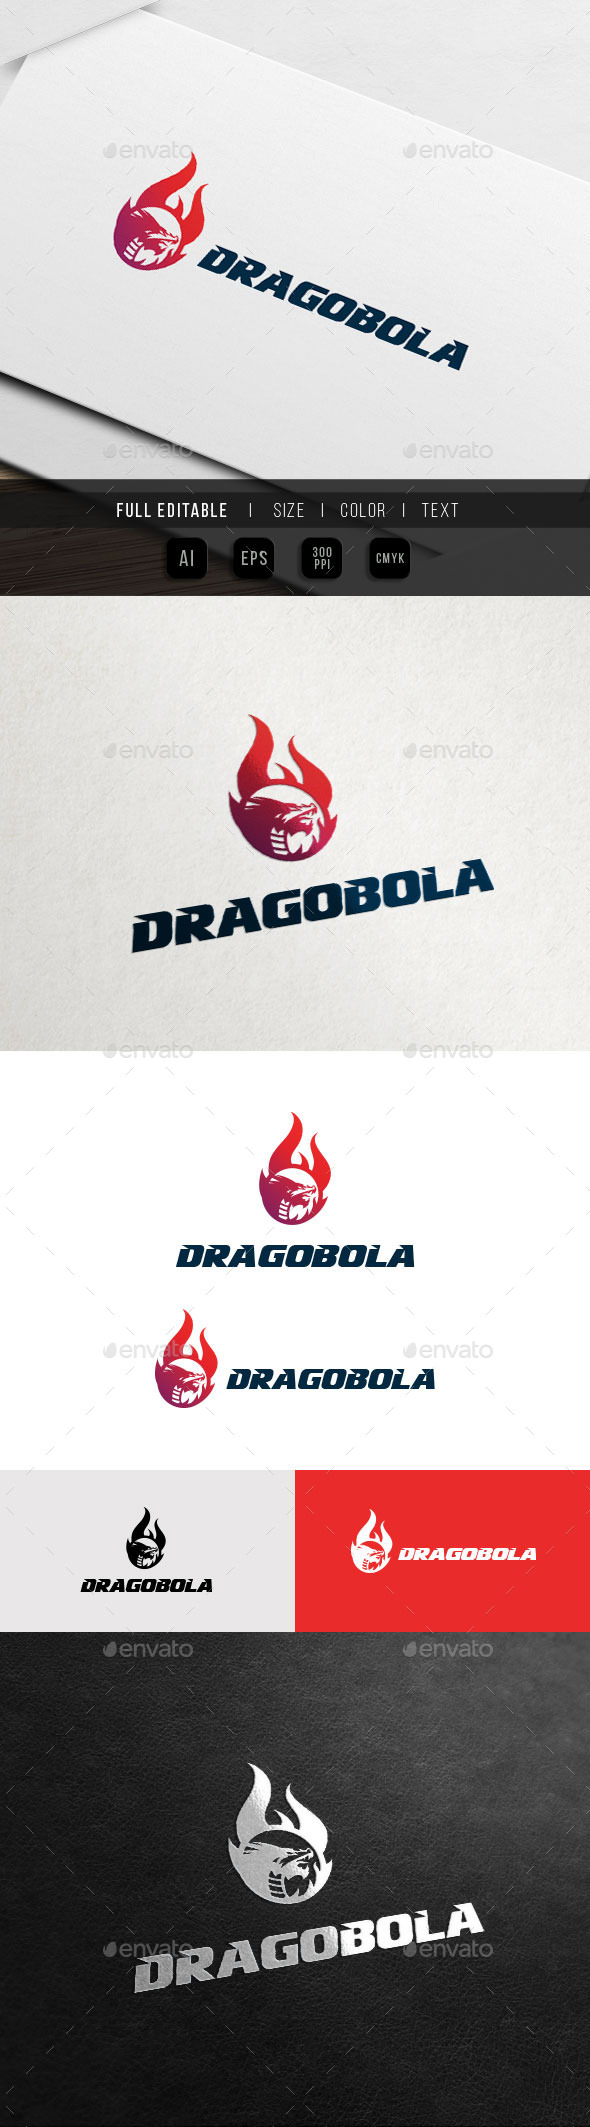 Dragon Flame - Fire Ball - Game Team Logo